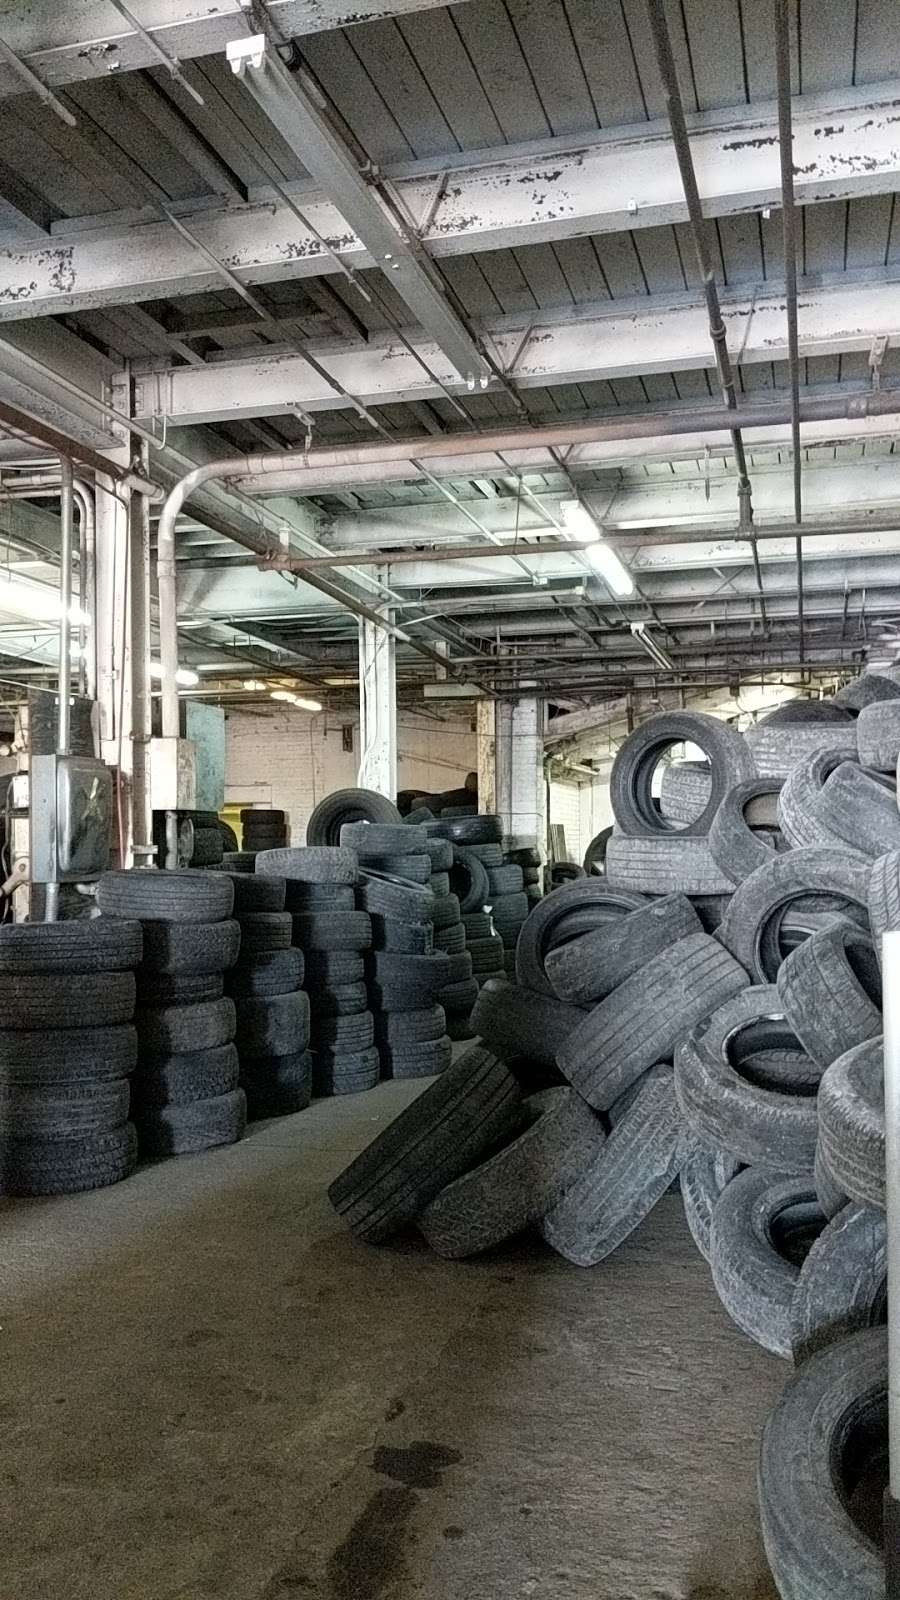 Tire Giants - car repair    Photo 4 of 10   Address: 8301 Torresdale Ave, Philadelphia, PA 19136, USA   Phone: (215) 941-4423